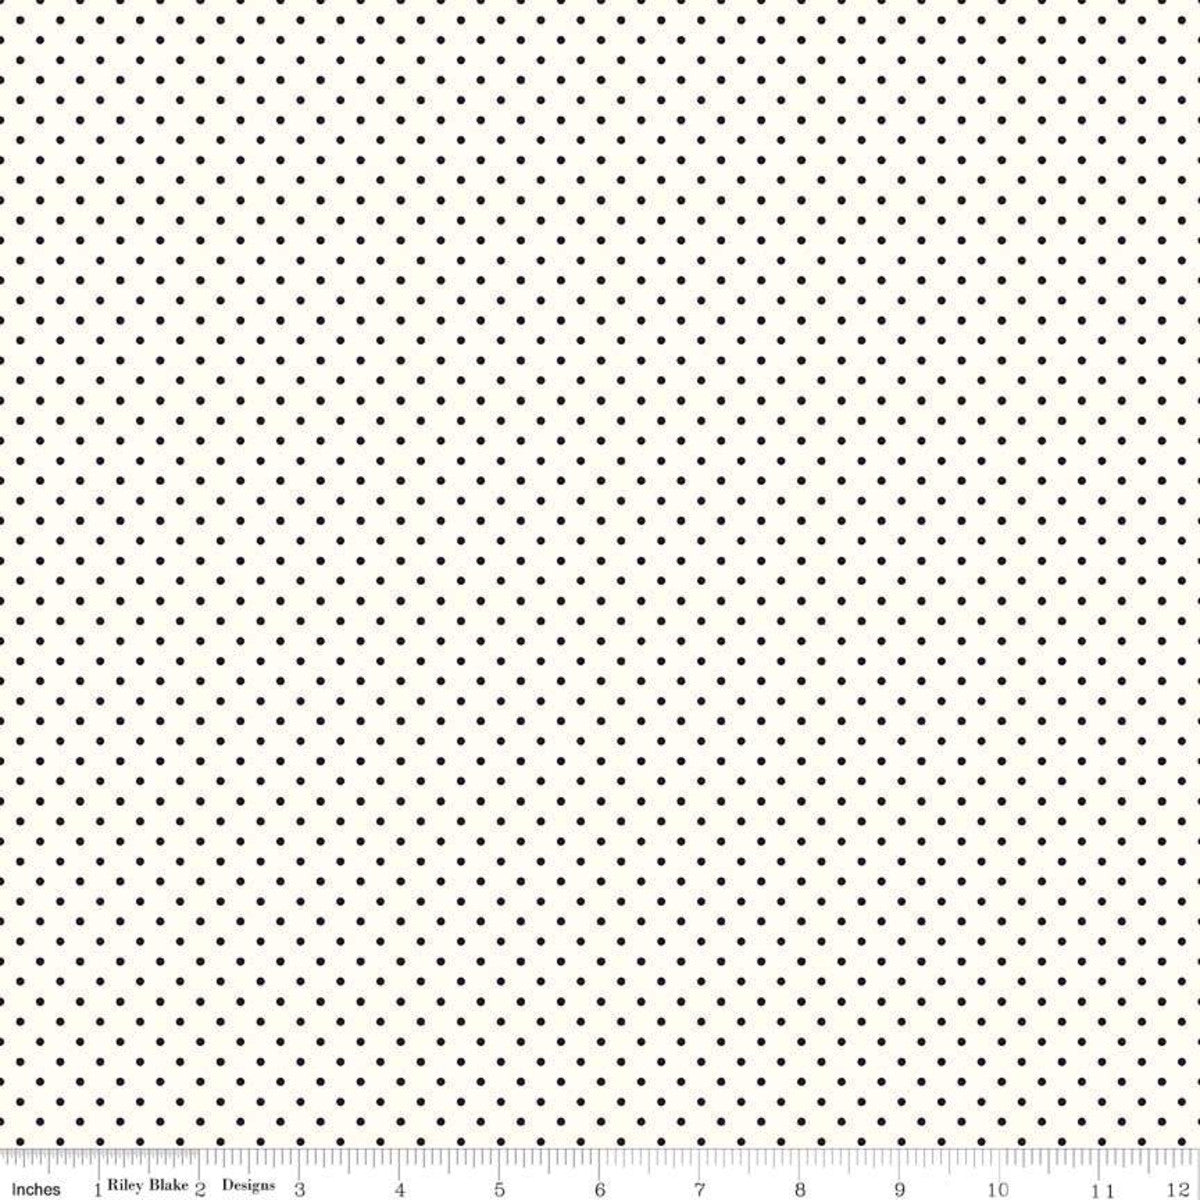 Fabric, Le Creme SWISS DOT BLACK BASIC by Riley Blake  (by the yard)